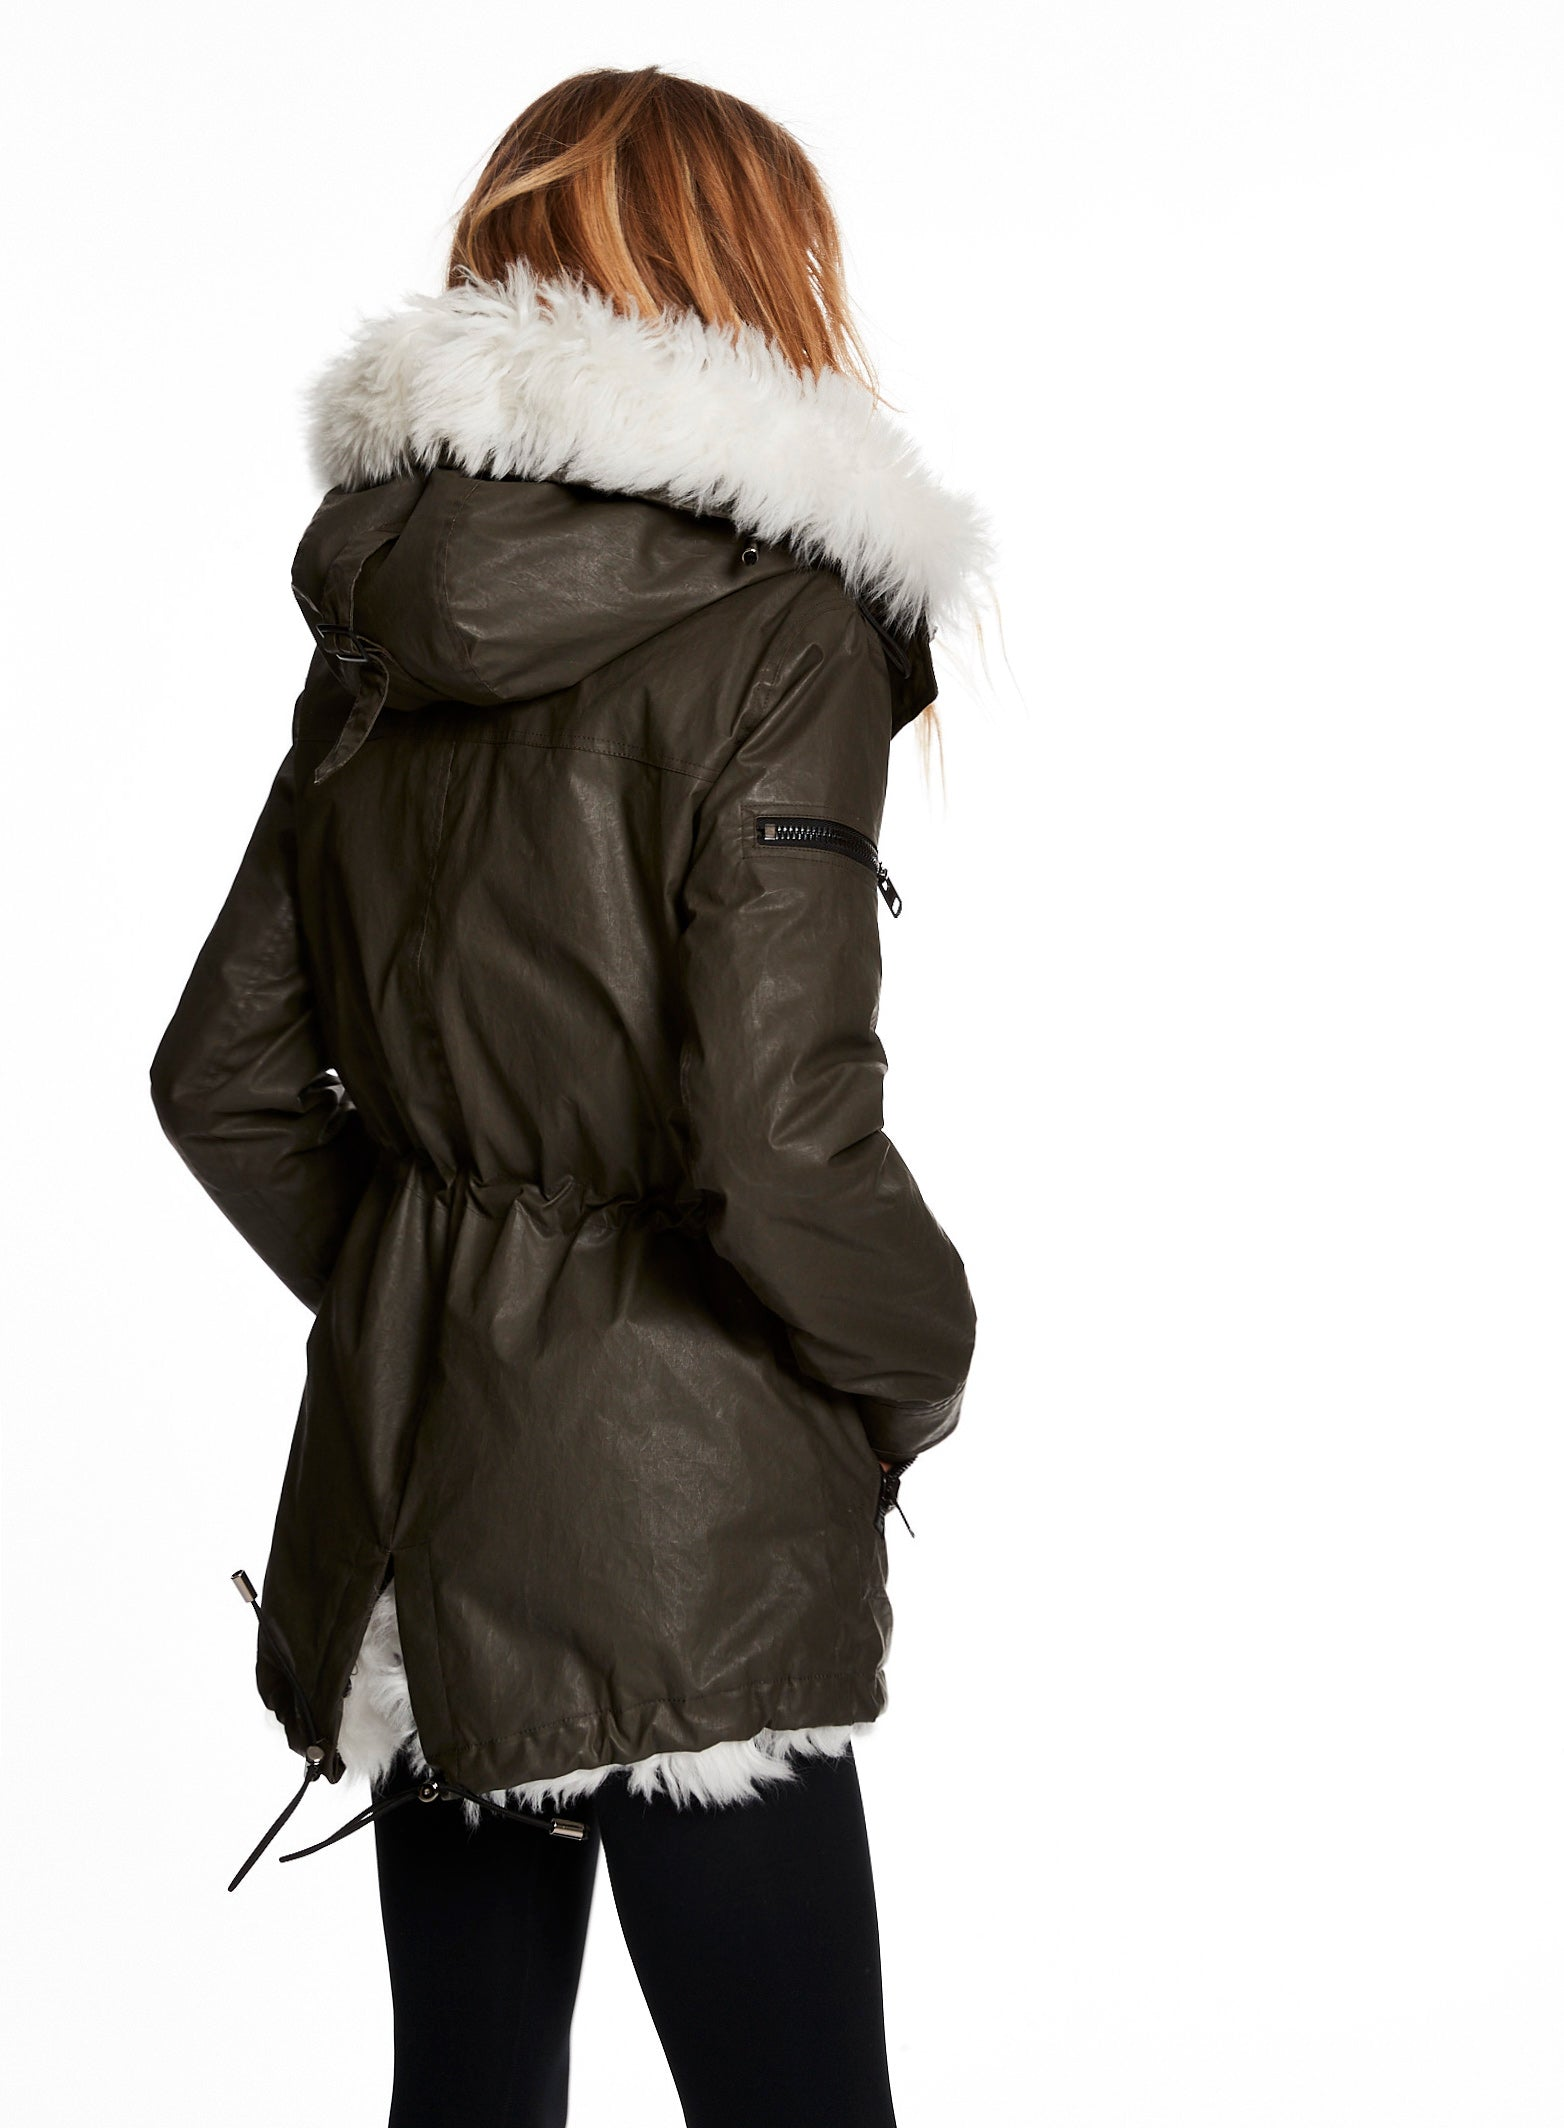 SHEARLING MINI LIMELIGHT SHEARLING MINI LIMELIGHT - SAM.